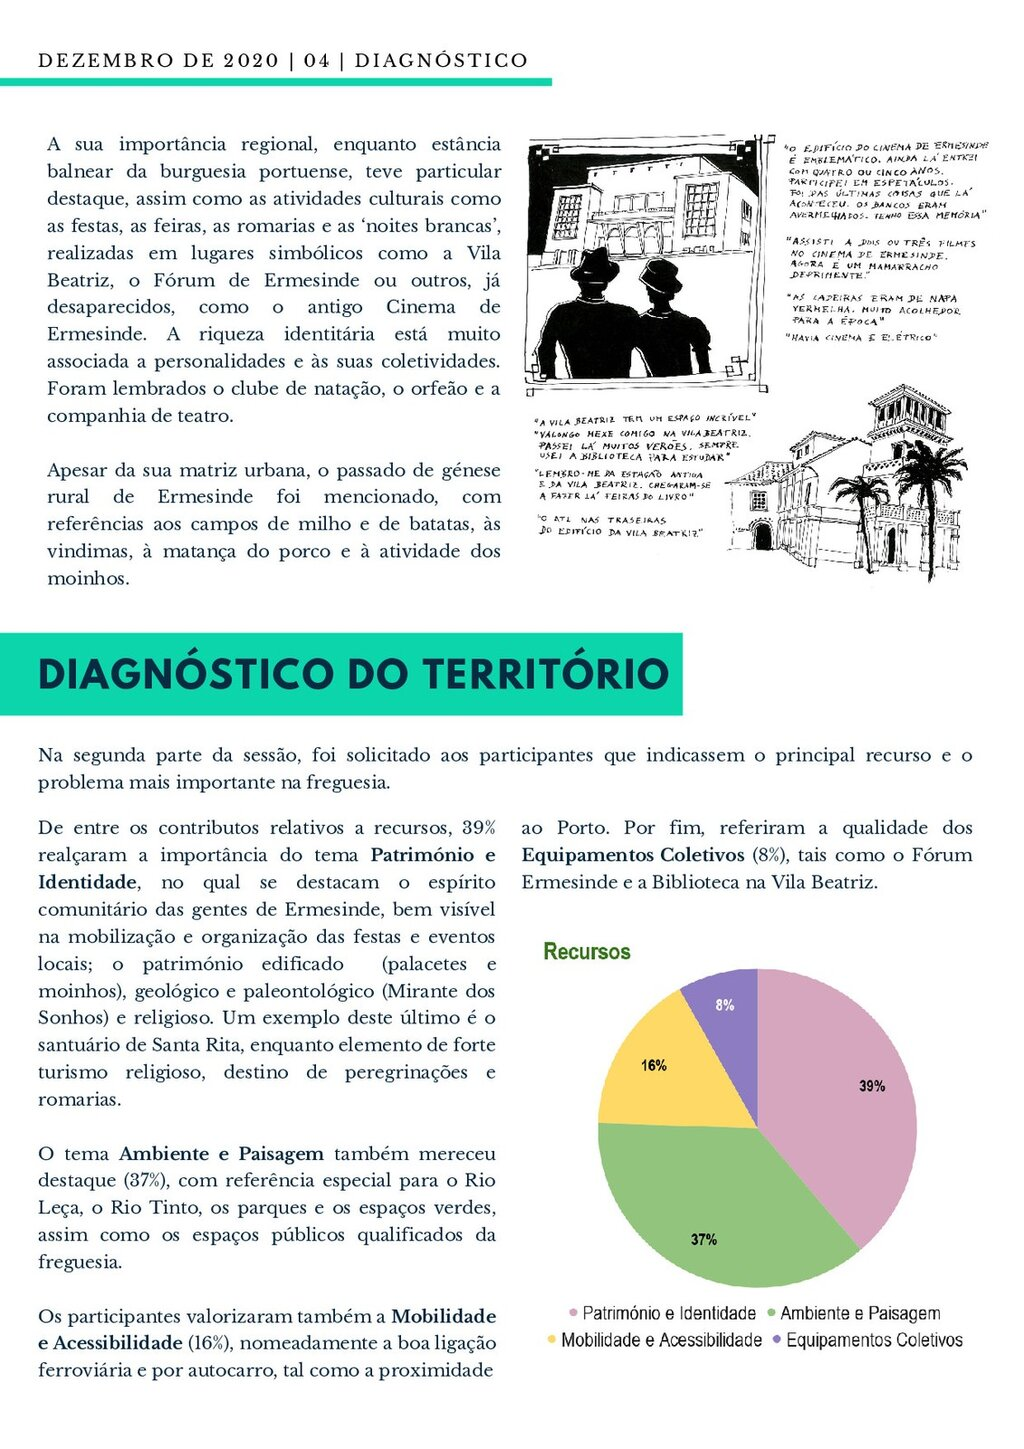 Newsletter#4 Valongo - Ermesinde (1)_002